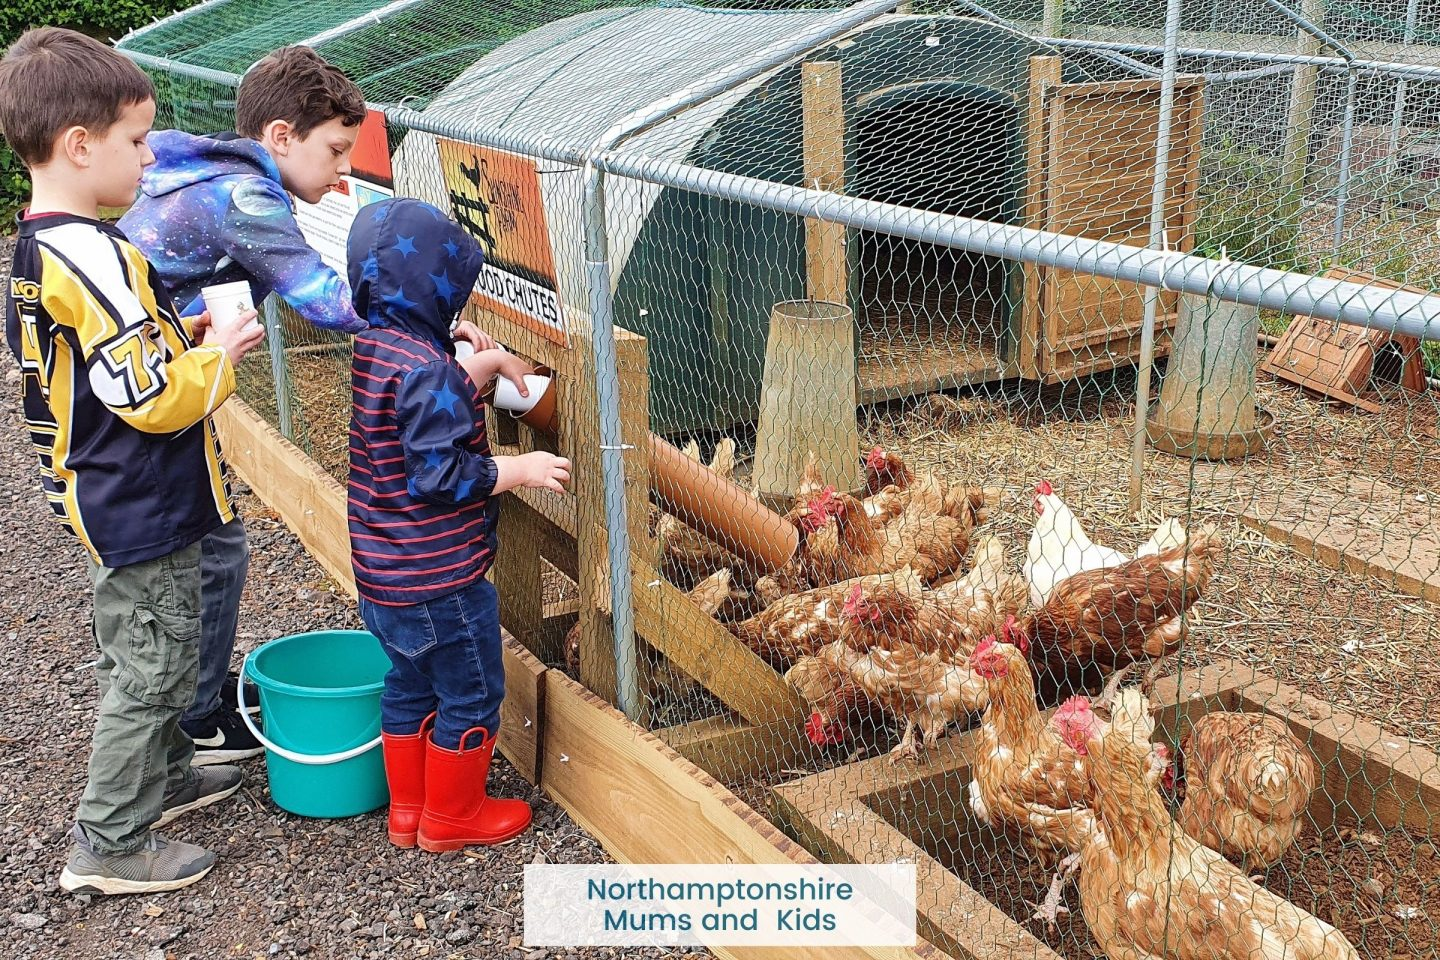 The Sunshine Farm Brixworth is a great half-day out. With animals to feed, a cafe and a play area there is enough to keep the kids happy.